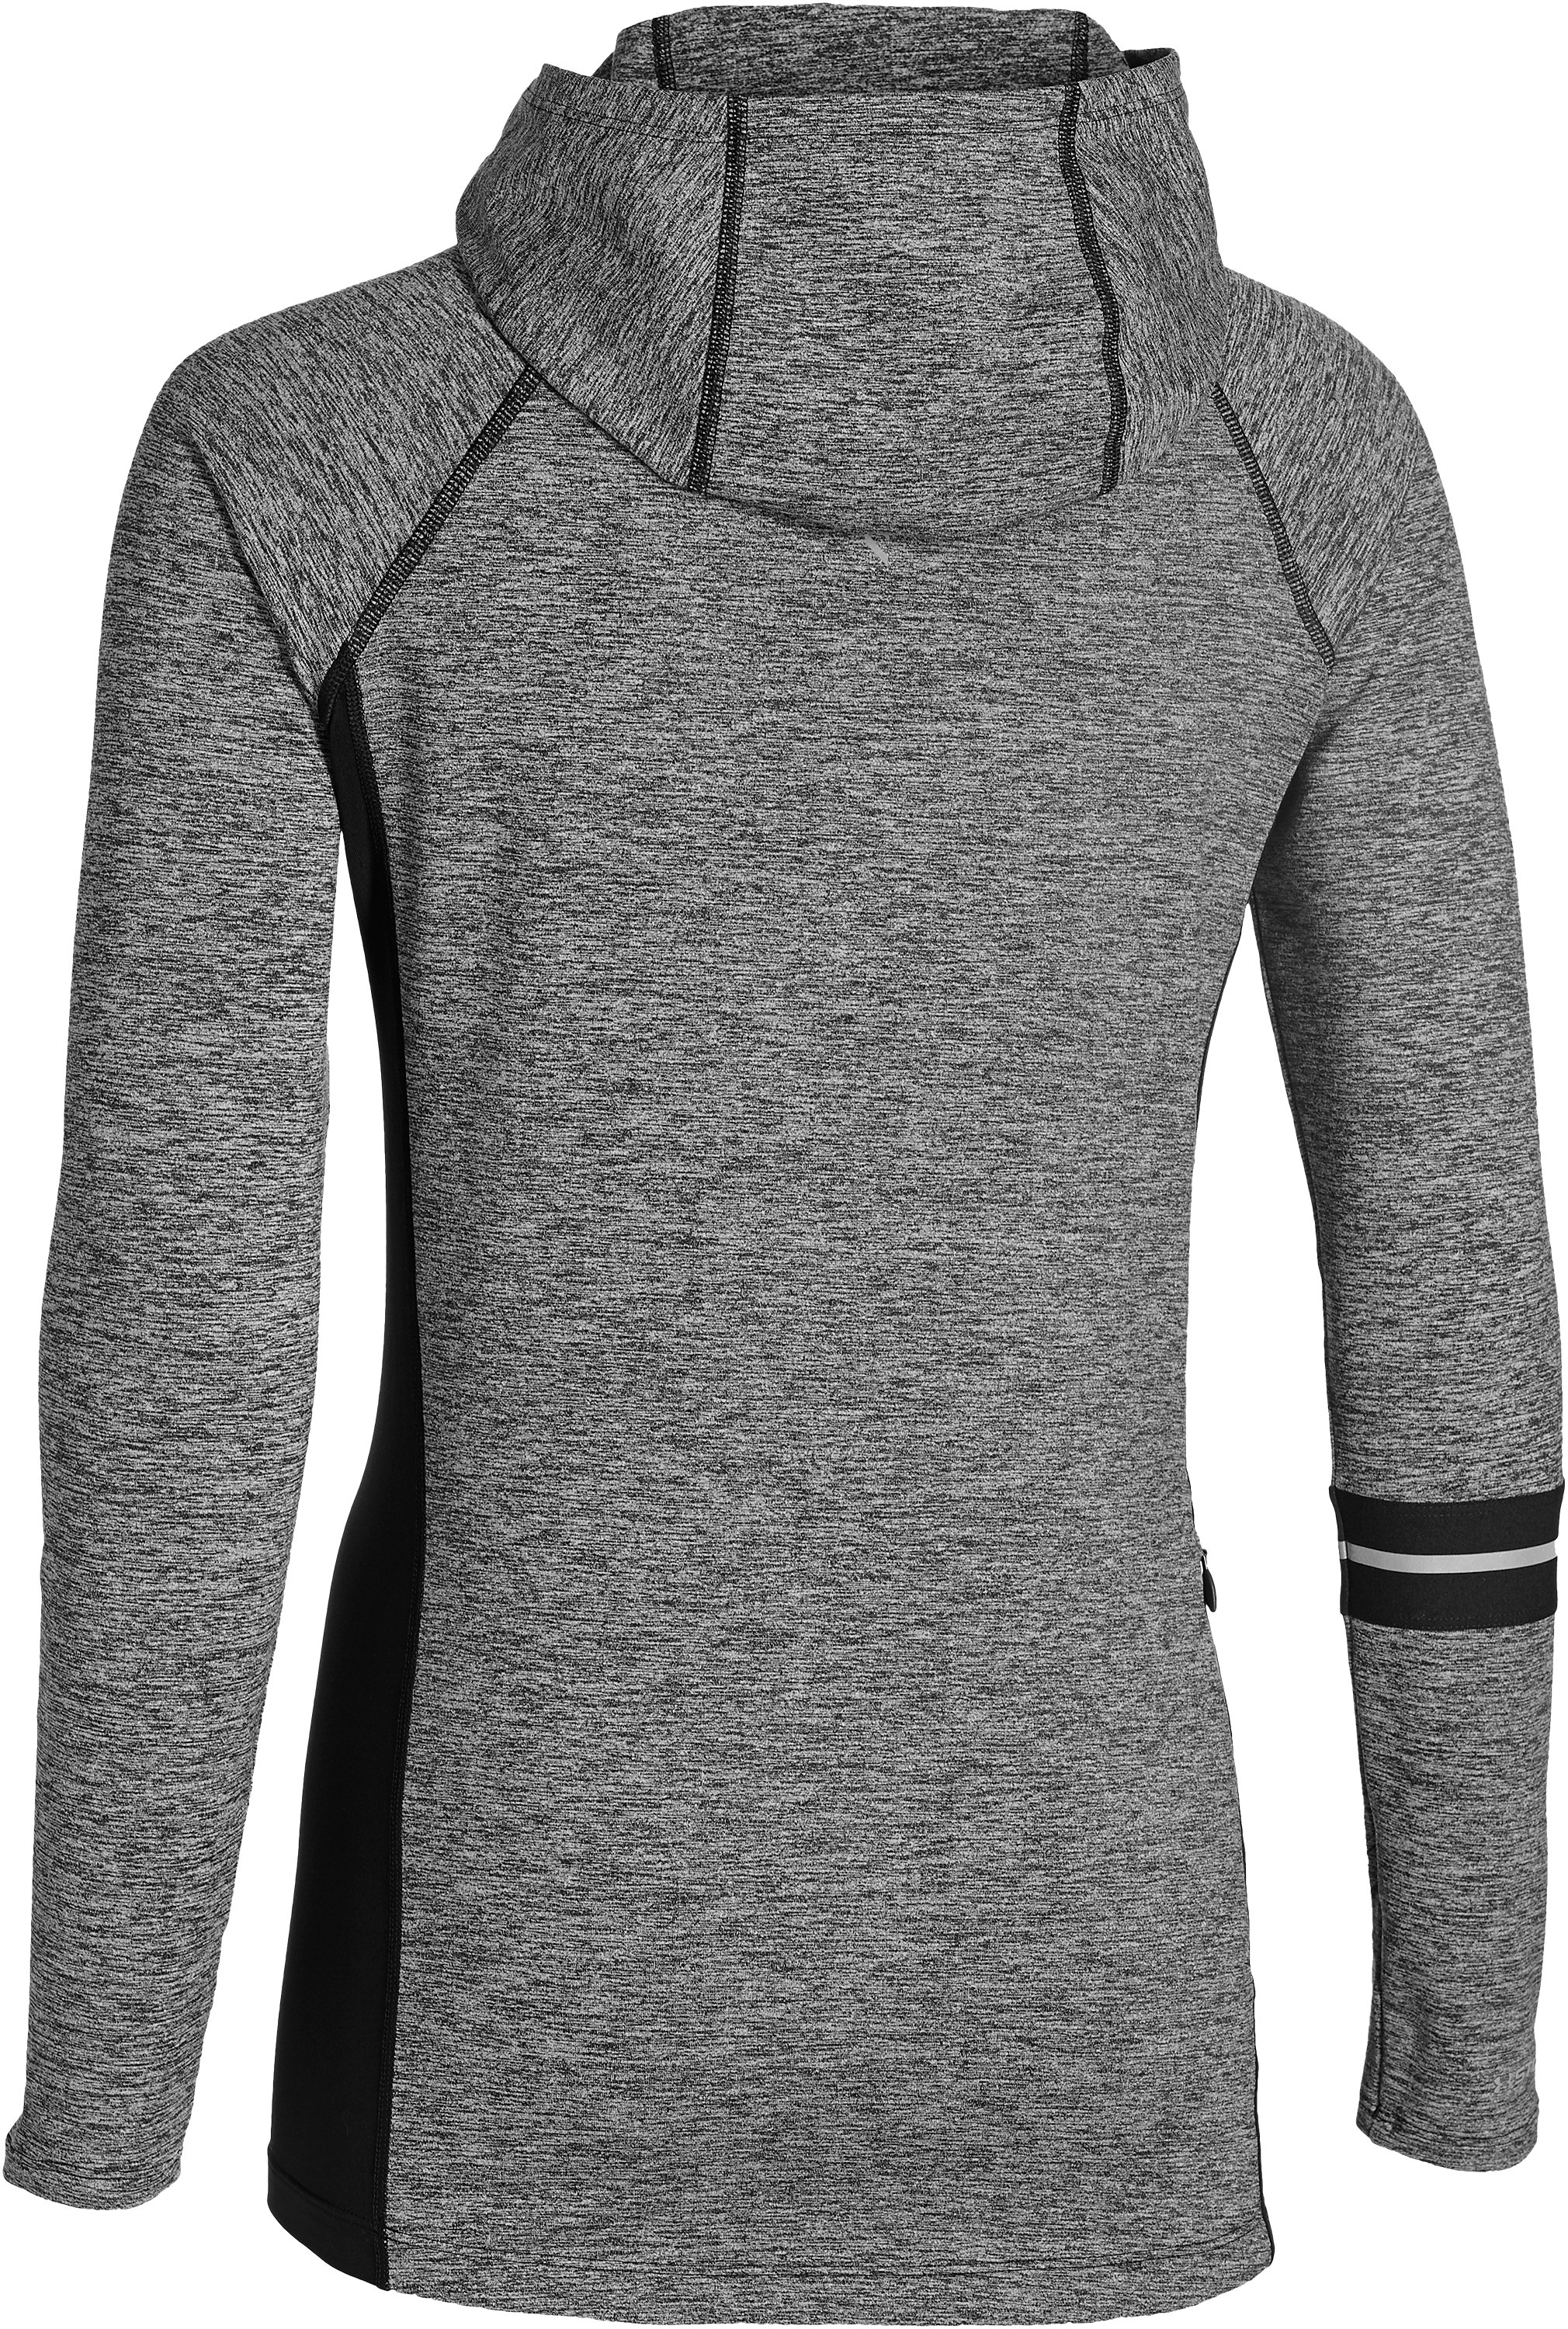 Women's UA Storm Layered Up Hoodie, Black , undefined